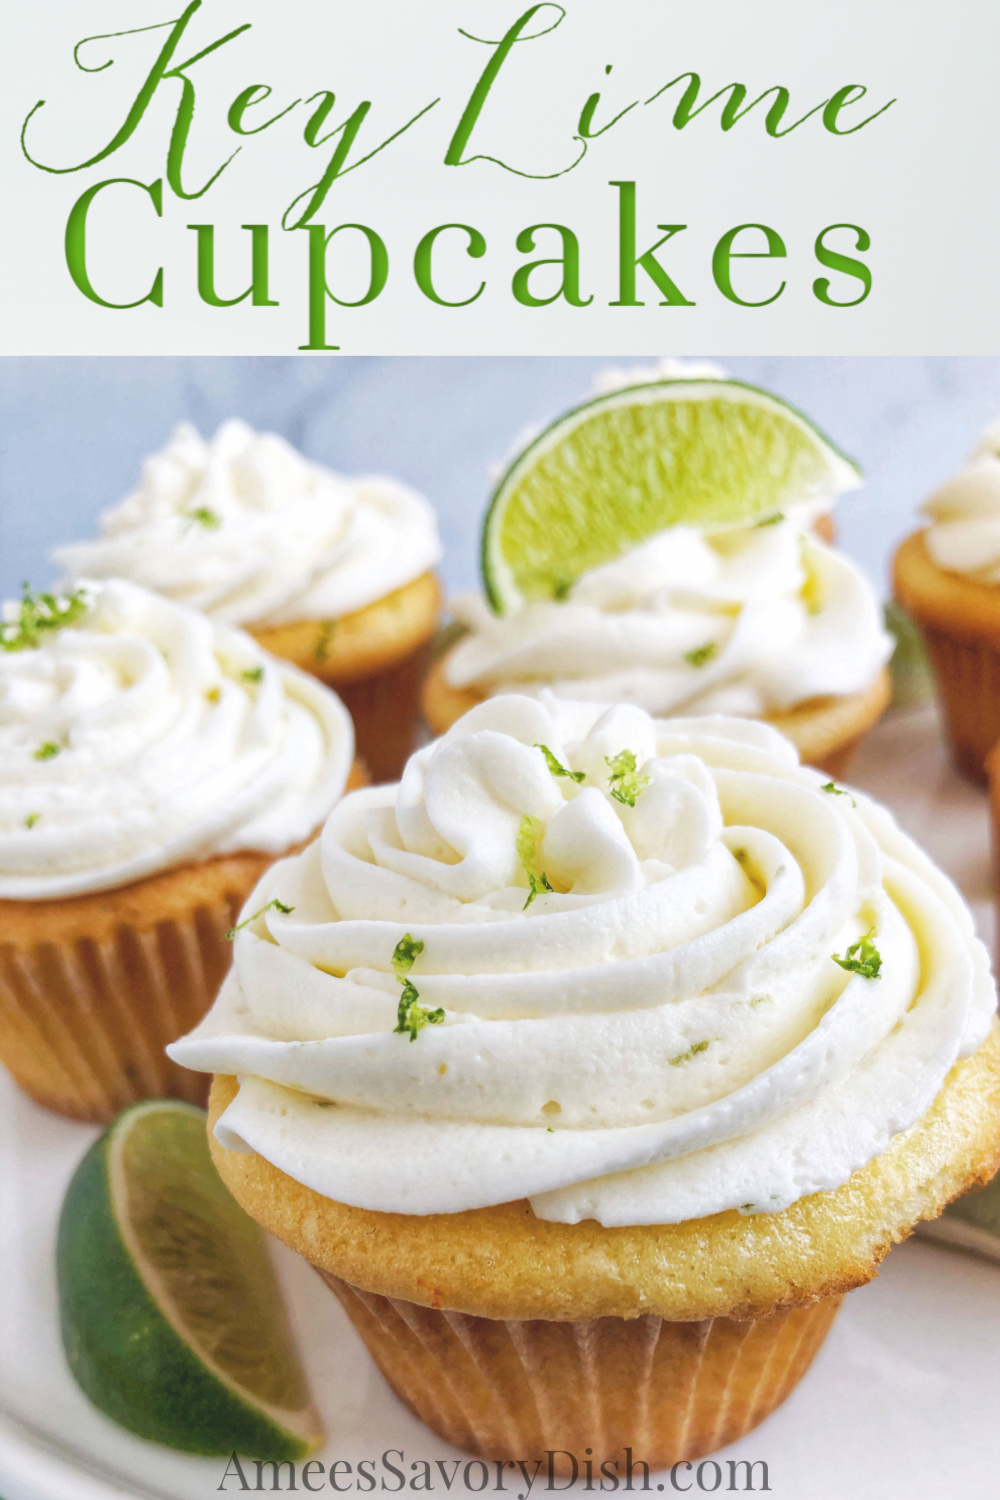 These Key Lime Cupcakes are a light buttery cupcake with key lime filling topped with a rich and delicious key lime buttercream frosting.#cupcakes #keylimedesserts #cupcakerecipe #keylimecupcakes #buttercreamfrosting via @Ameecooks